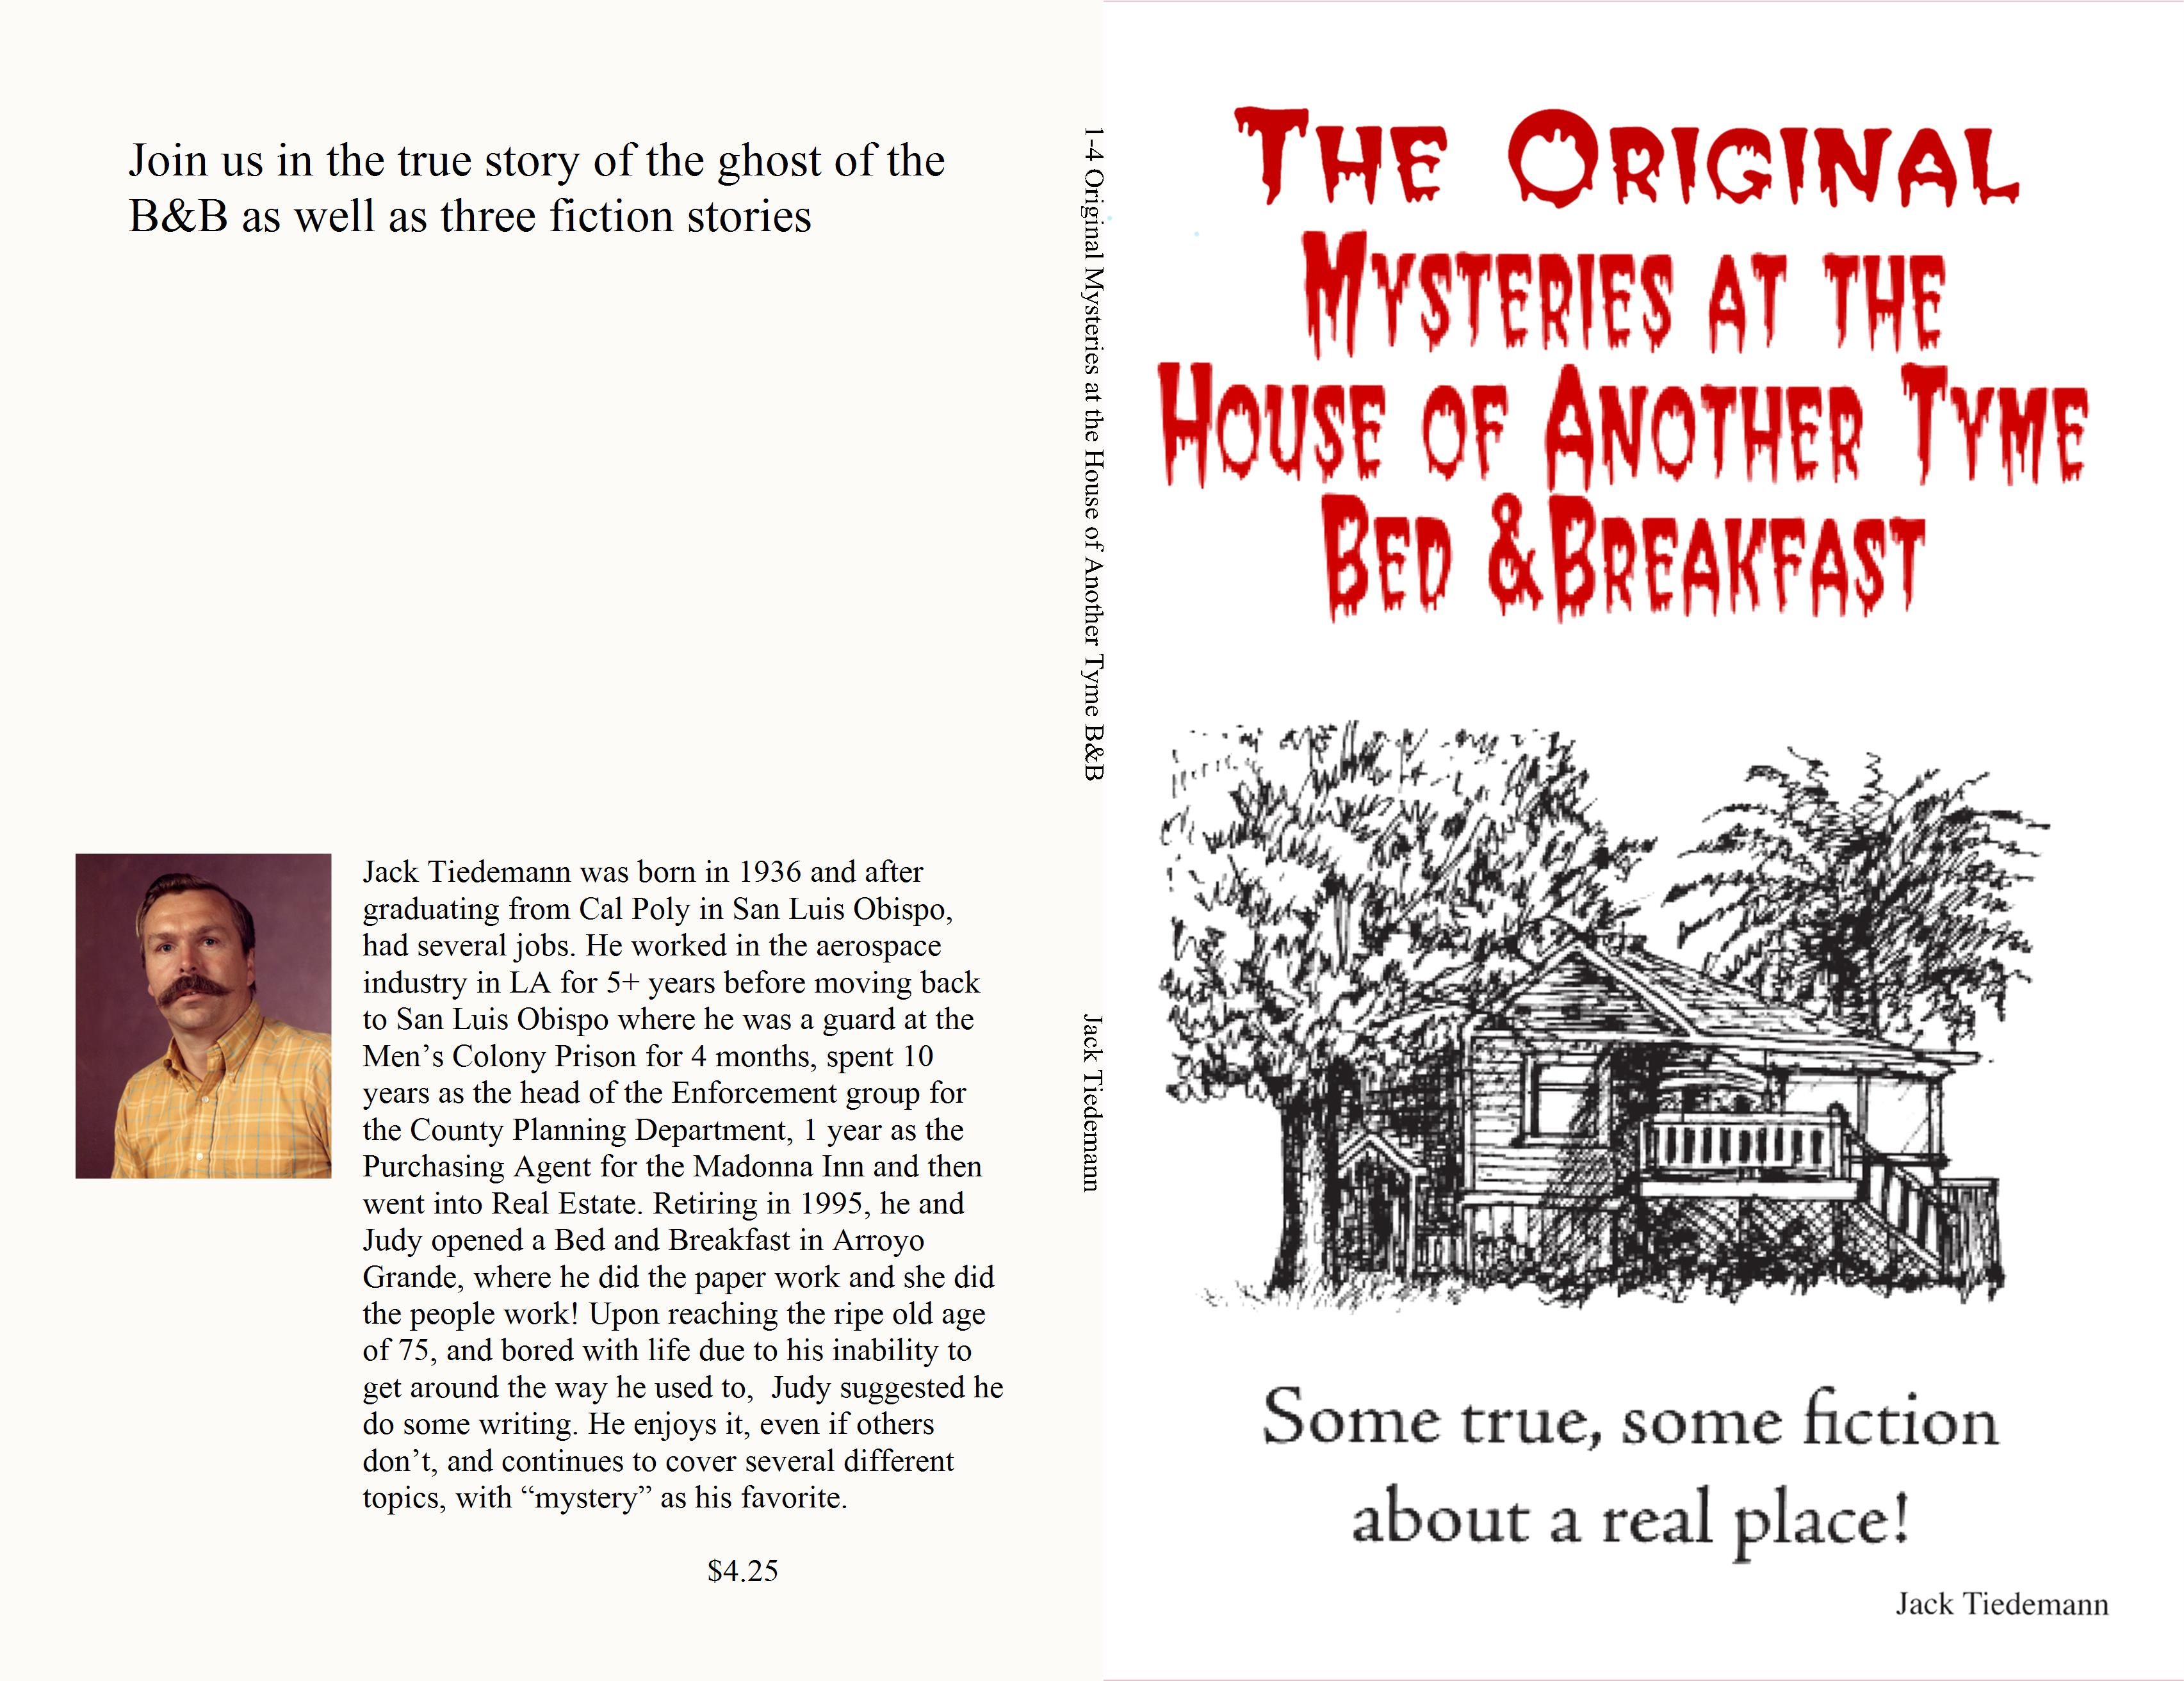 1-4 Original Mysteries at the House of Another Tyme B&B cover image